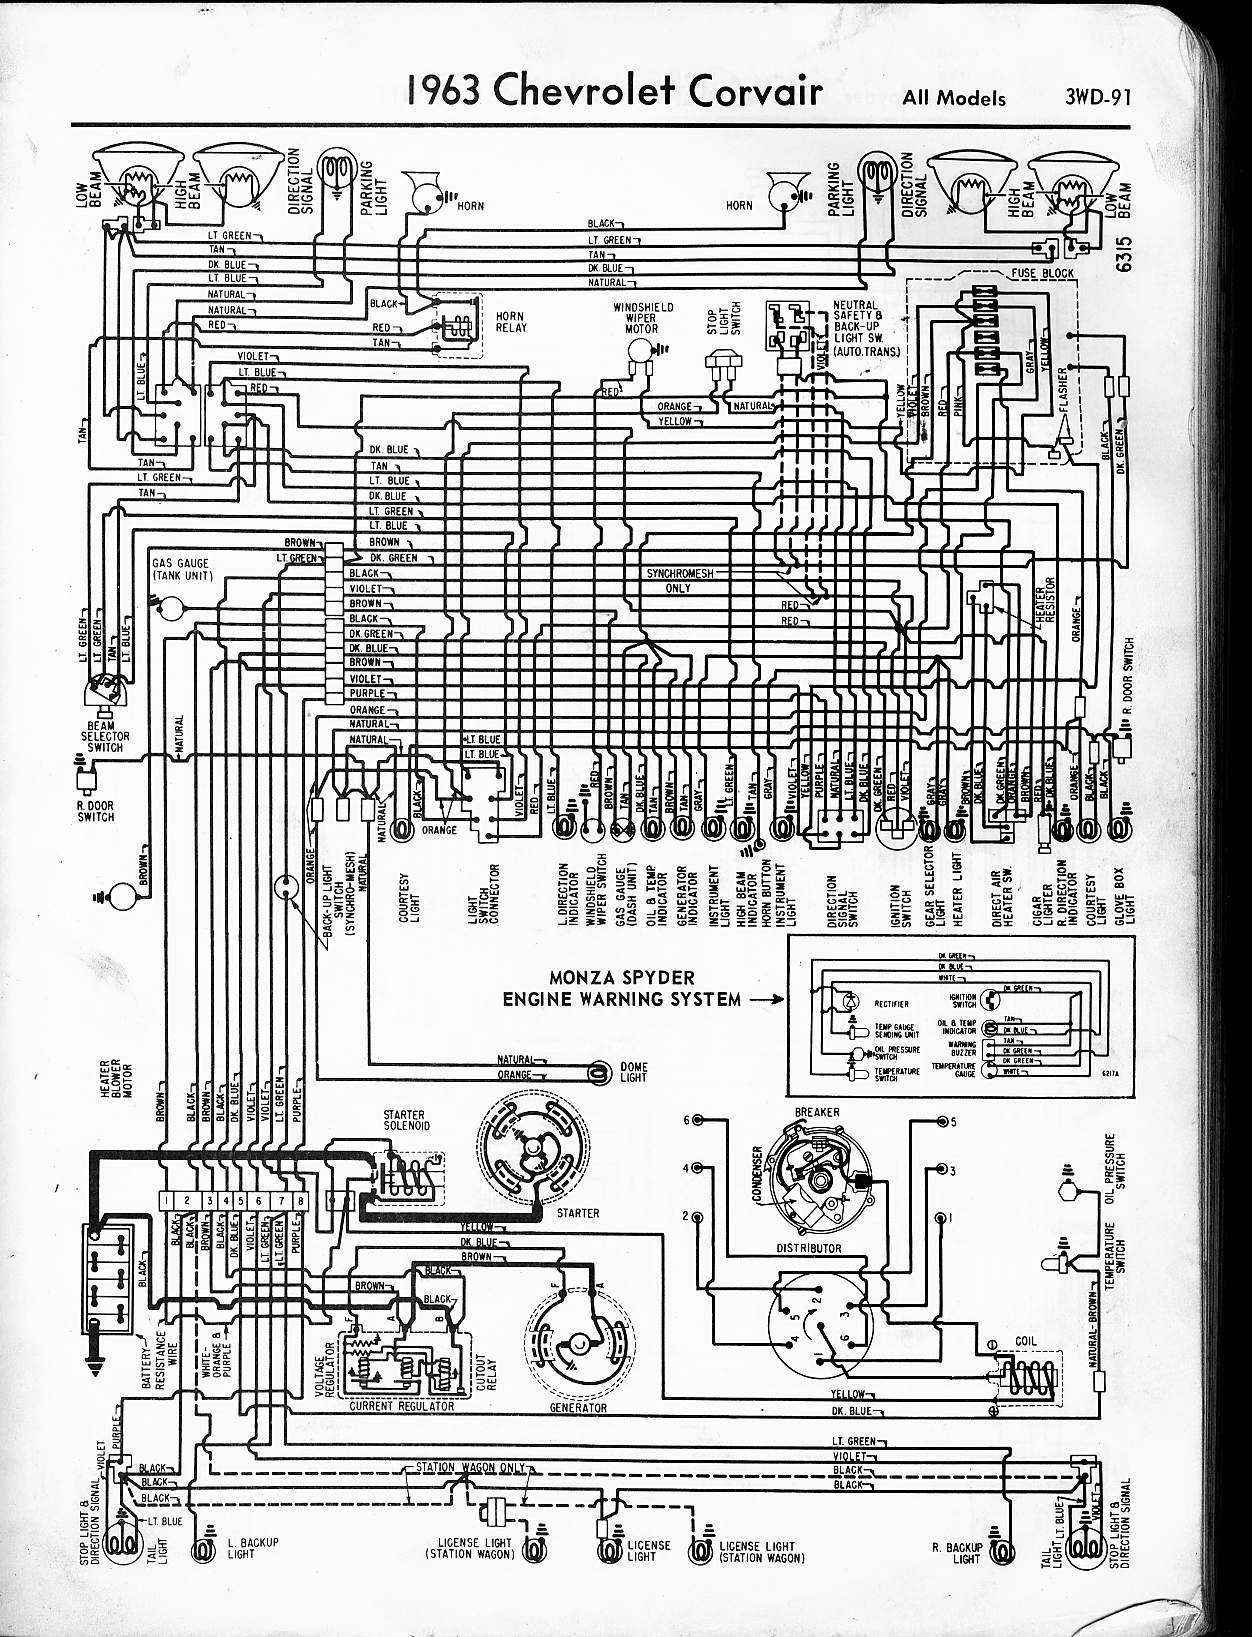 63 Impala Ignition Wiring Diagram Daily Update 1970 Cadillac Diagrams Chevy Turn Signal Free